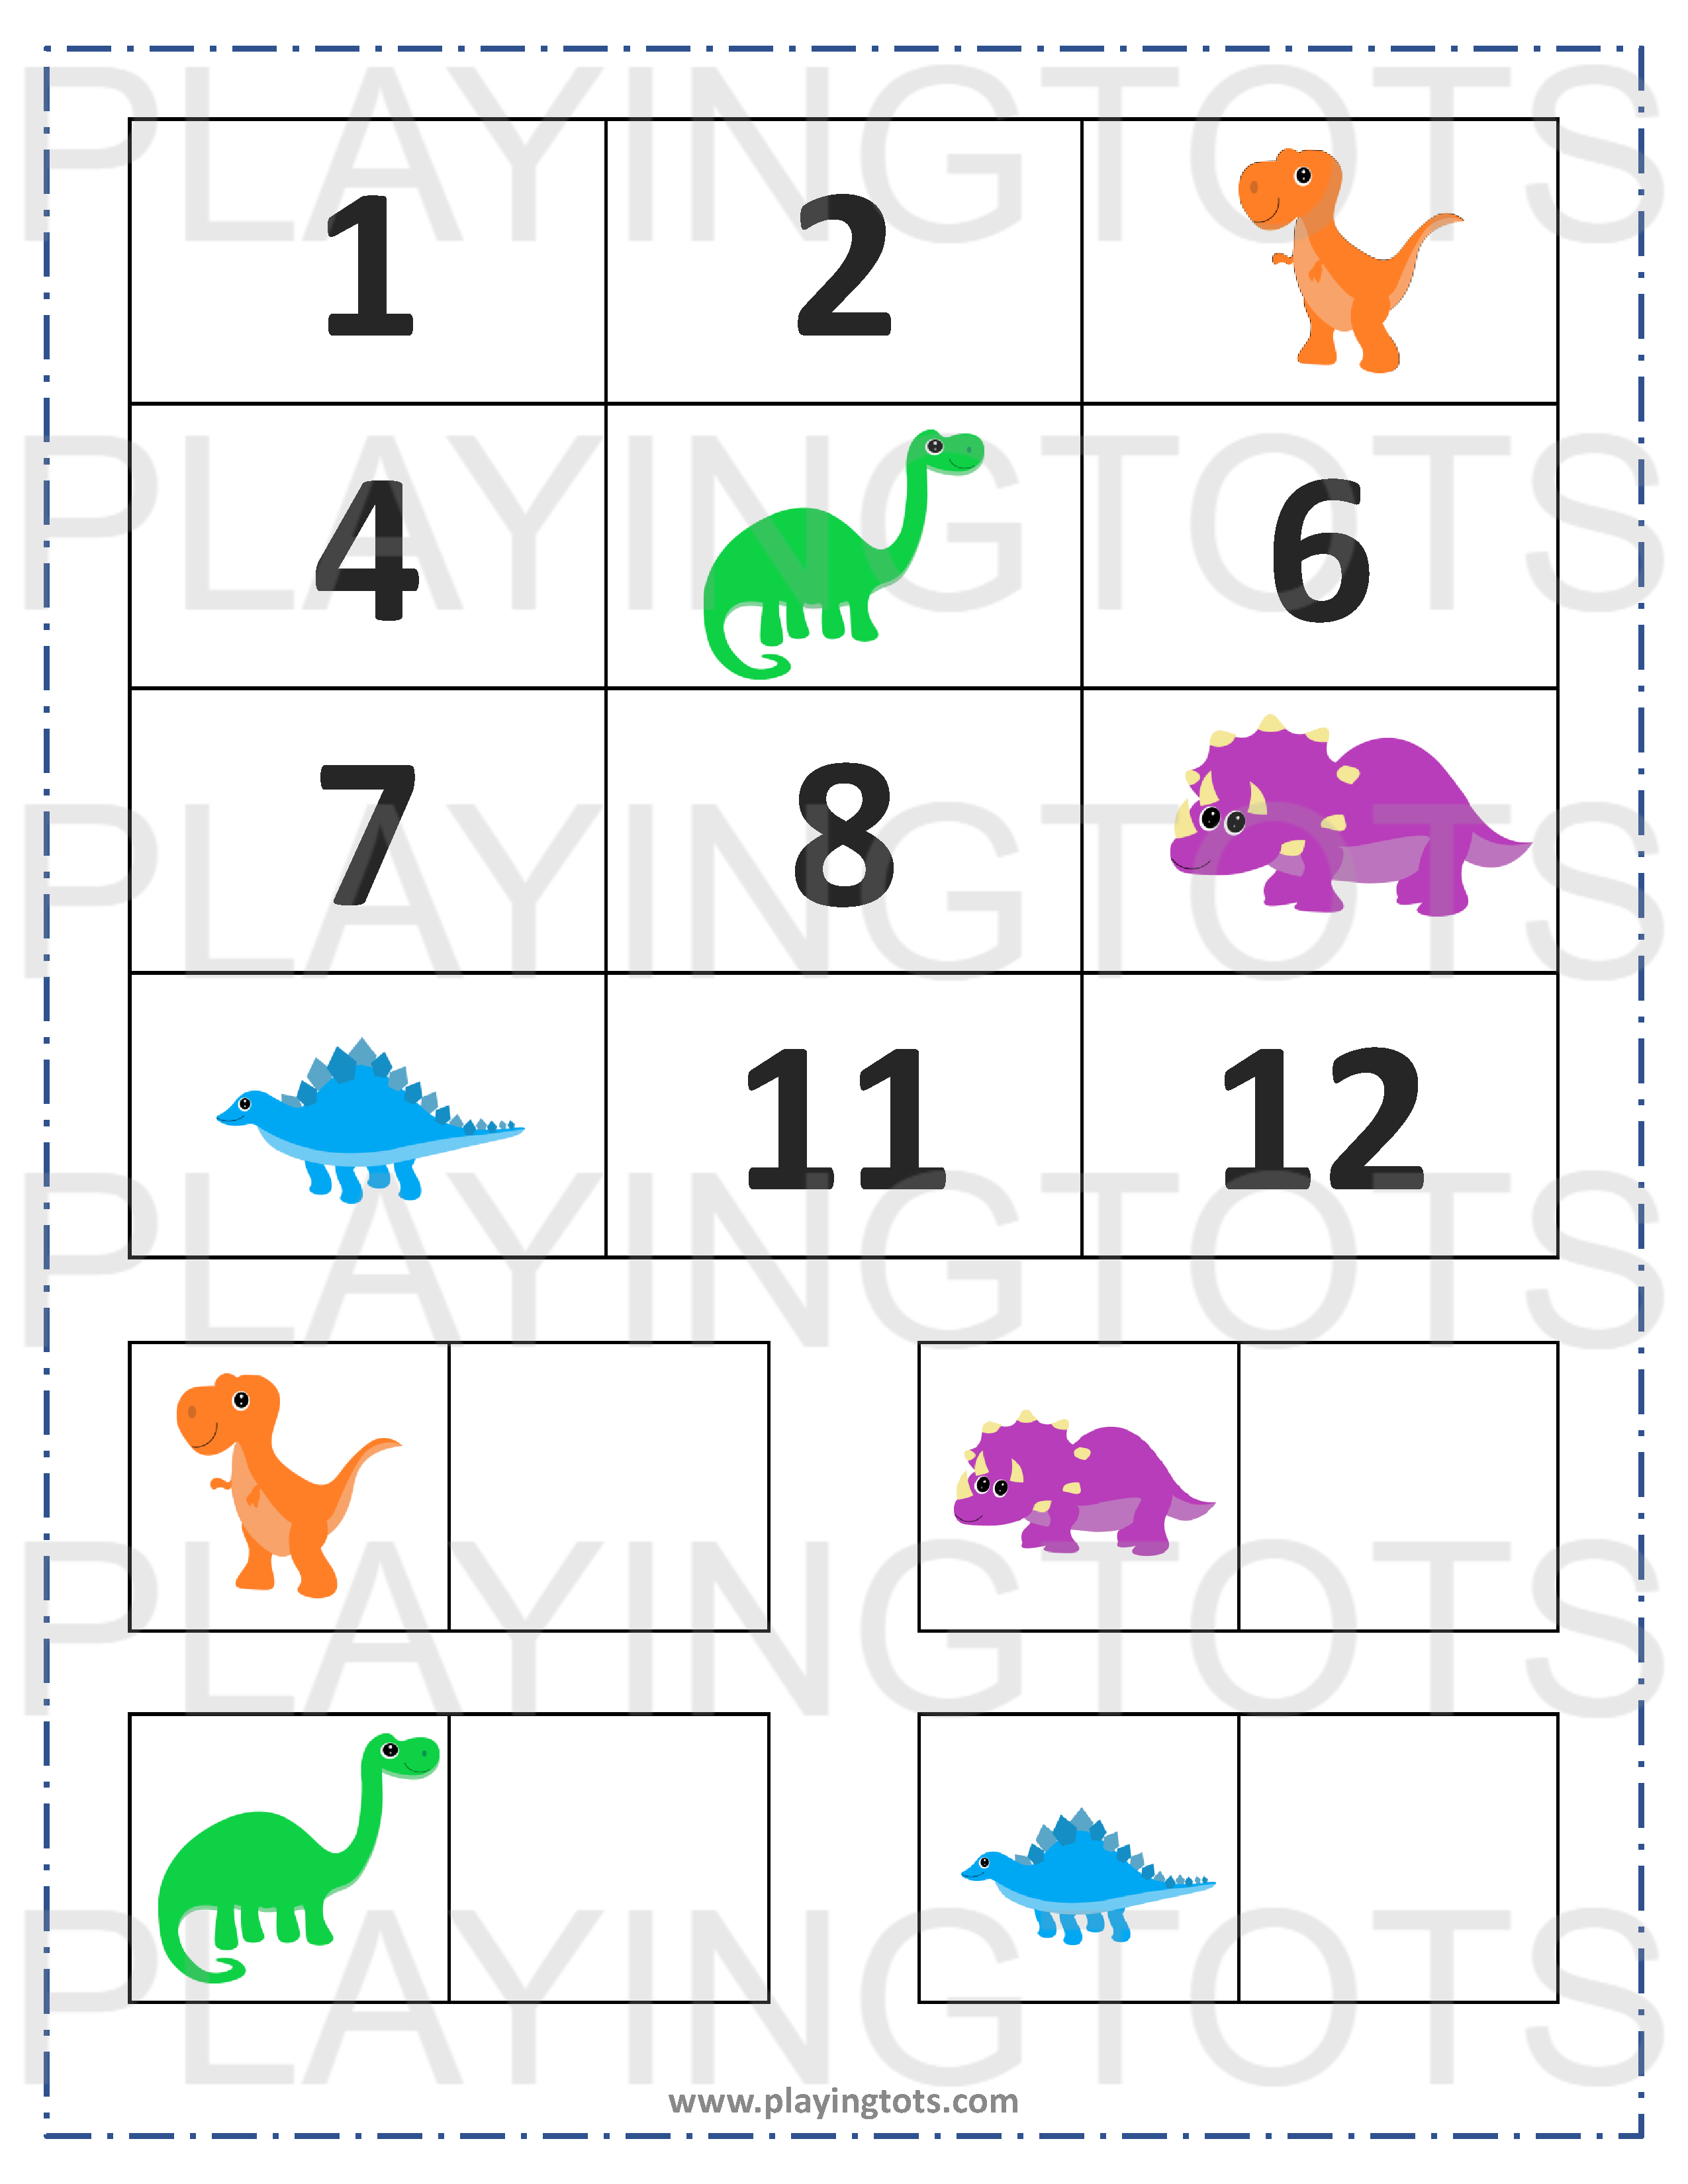 Learning Resources For Toddlers And Preschoolers In 2021 Learning Resources Toddler Preschool Writing Worksheets [ 3300 x 2550 Pixel ]